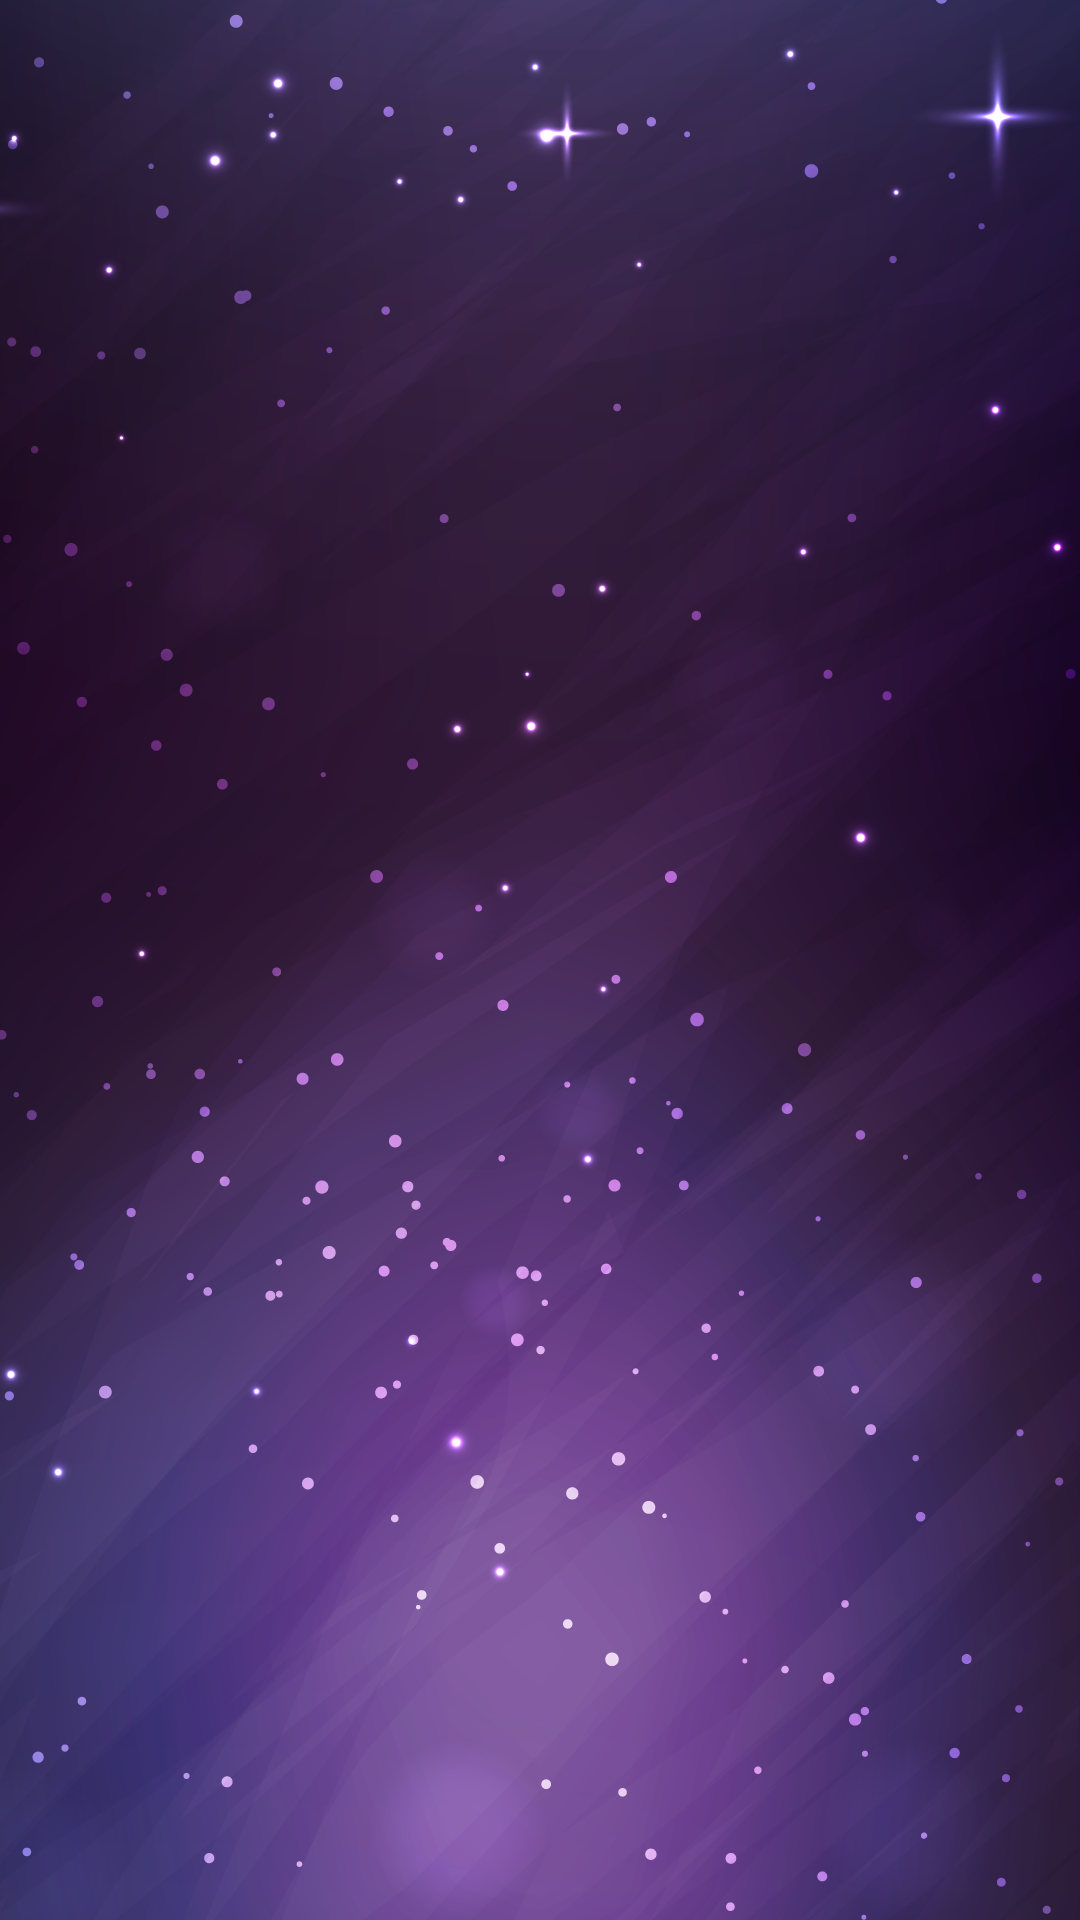 Purple Space 1080 X 1920 FHD Wallpaper